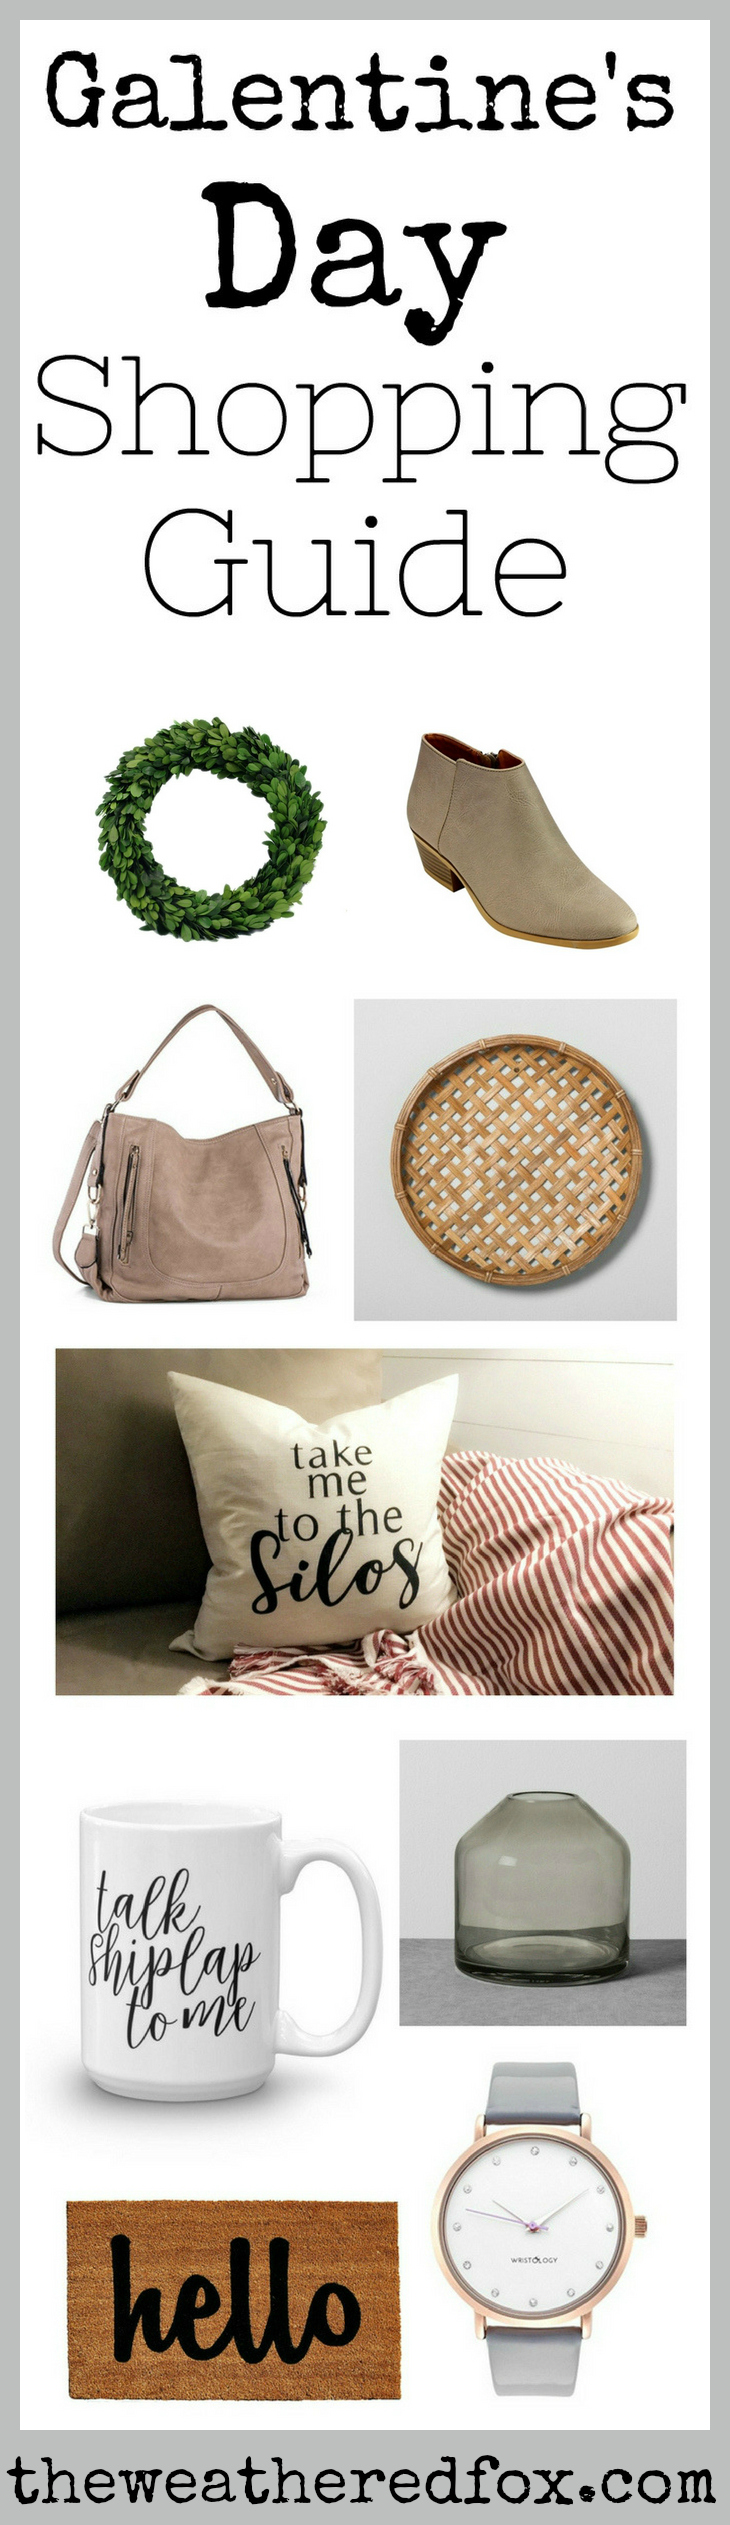 Have you been looking for some Galentine's Day ideas? I've got you covered with this amazing Galentine's Day Gifts shopping guide! Everything that your BFFs actually want, like booties, bags and farmhouse home decor! Leslie Knope would be proud!